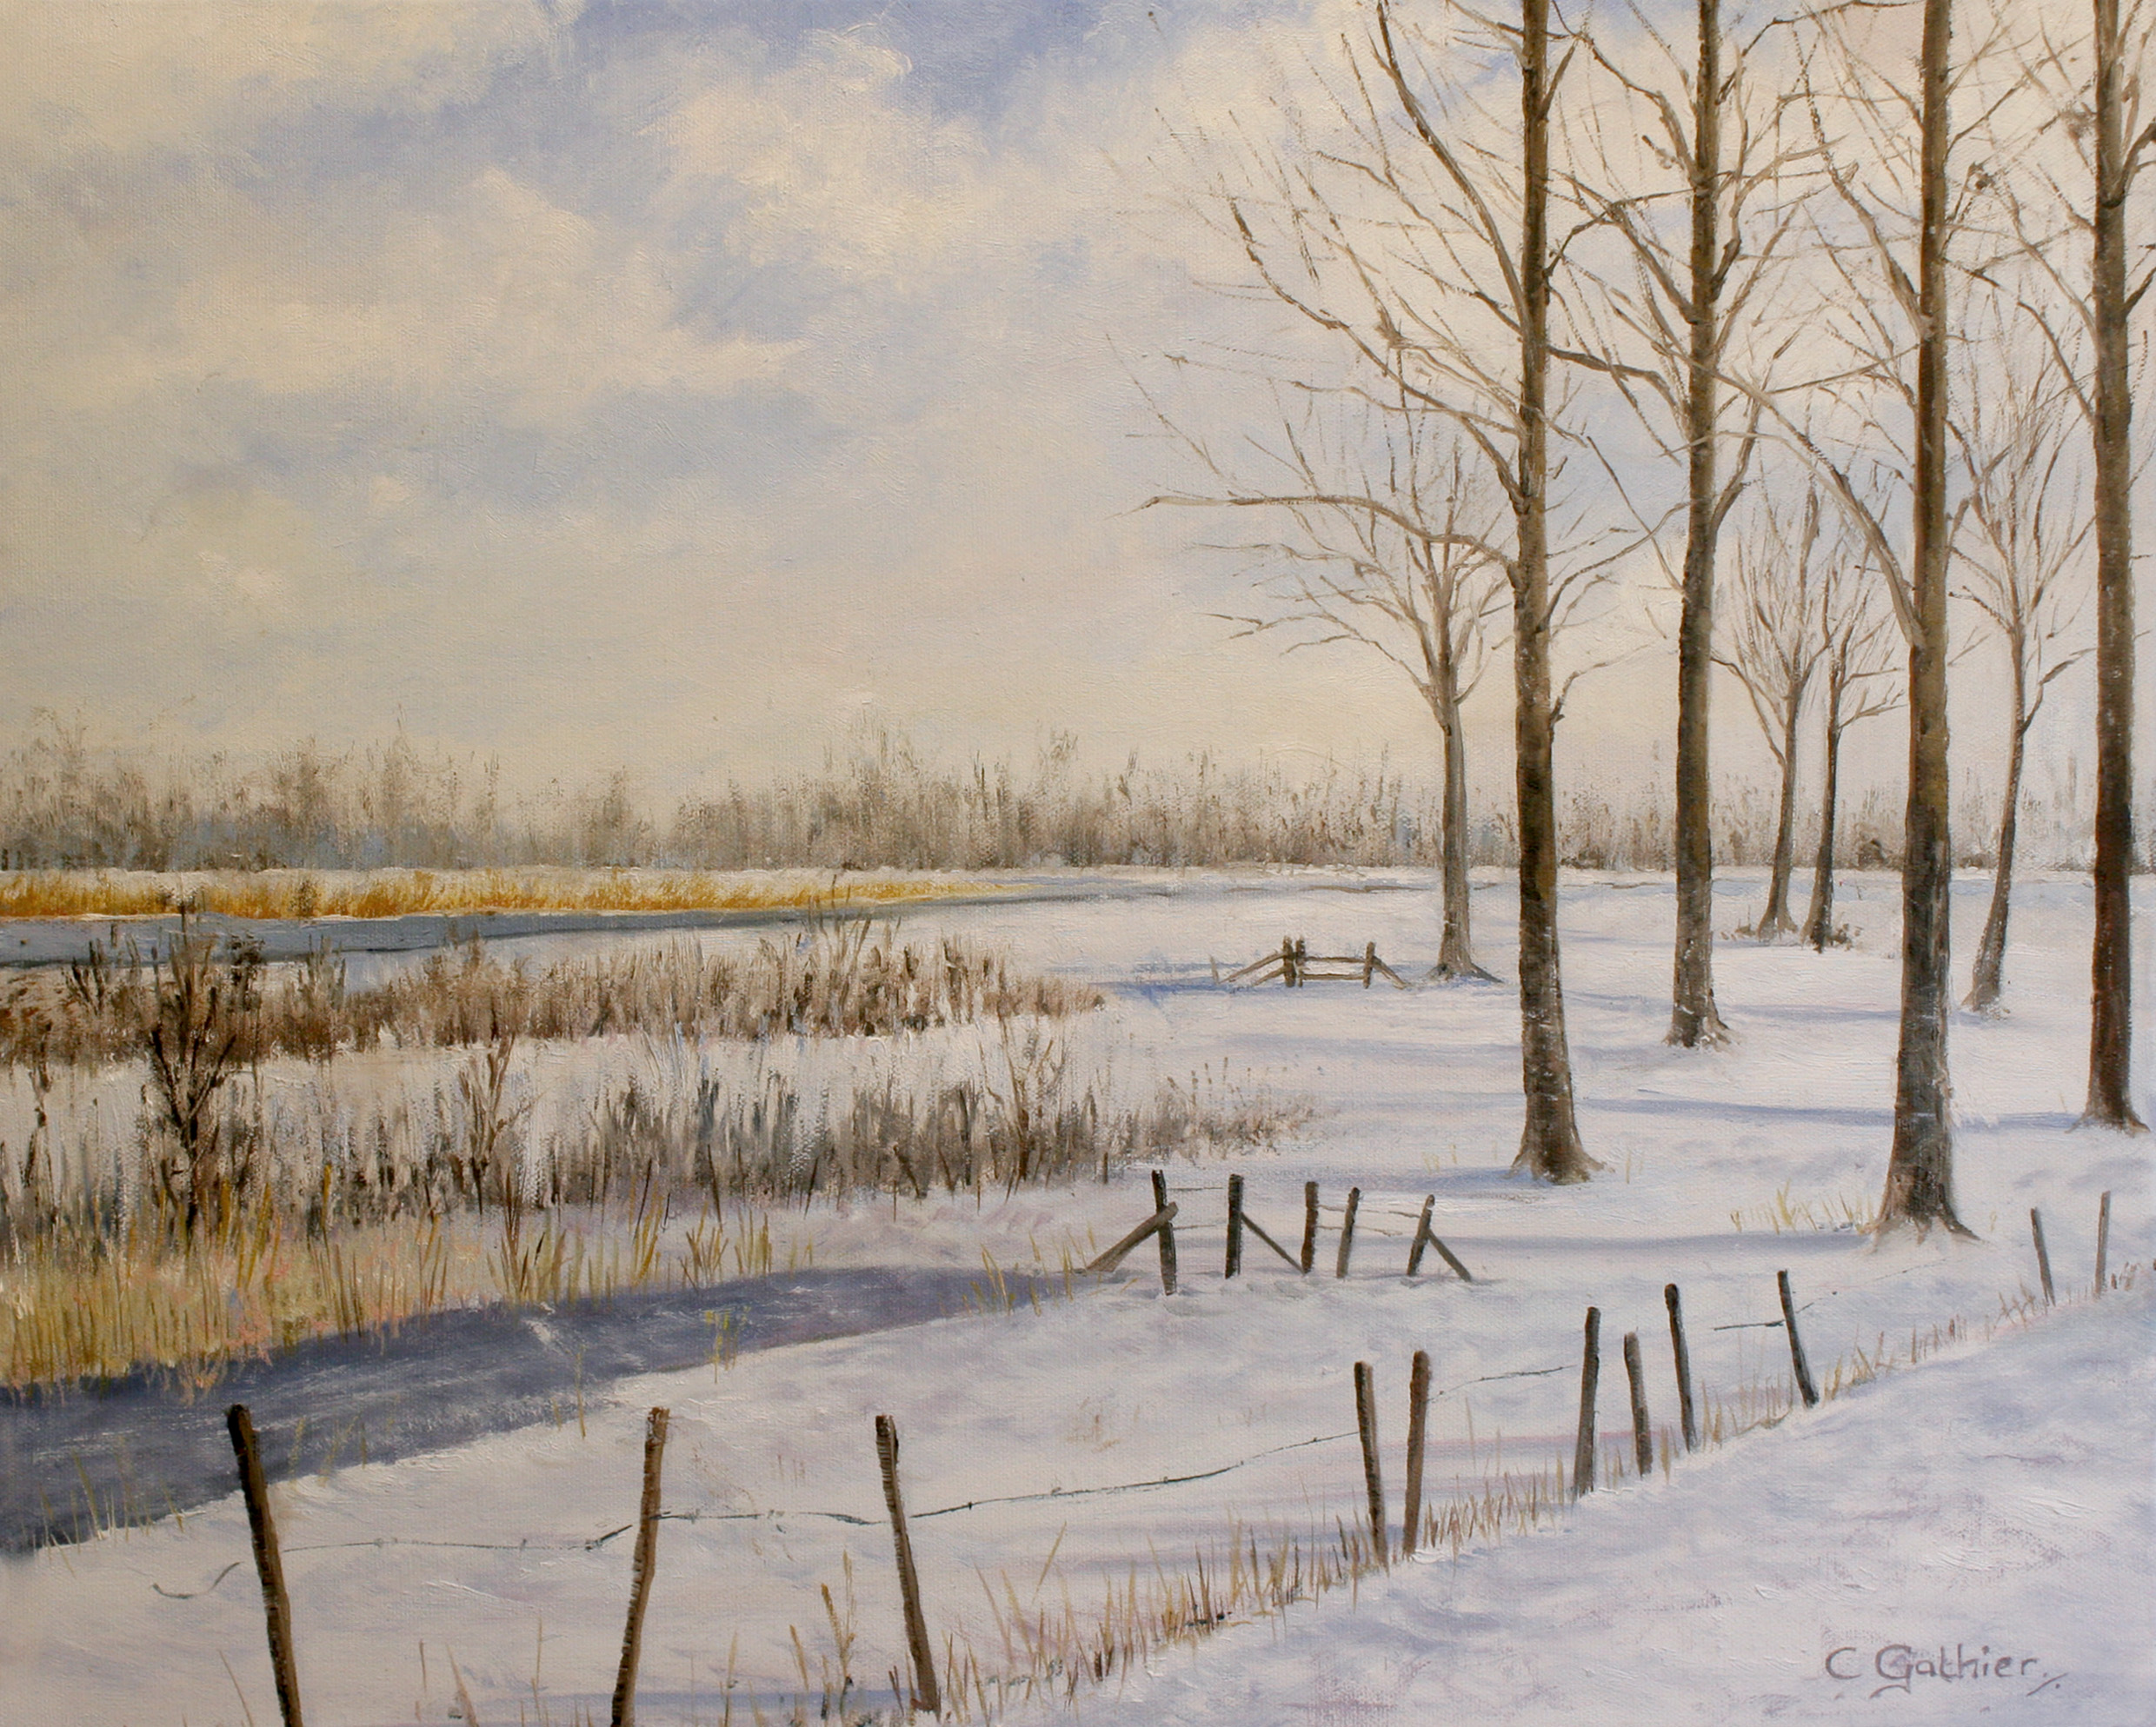 winterlandschap olieverf catherine gathier